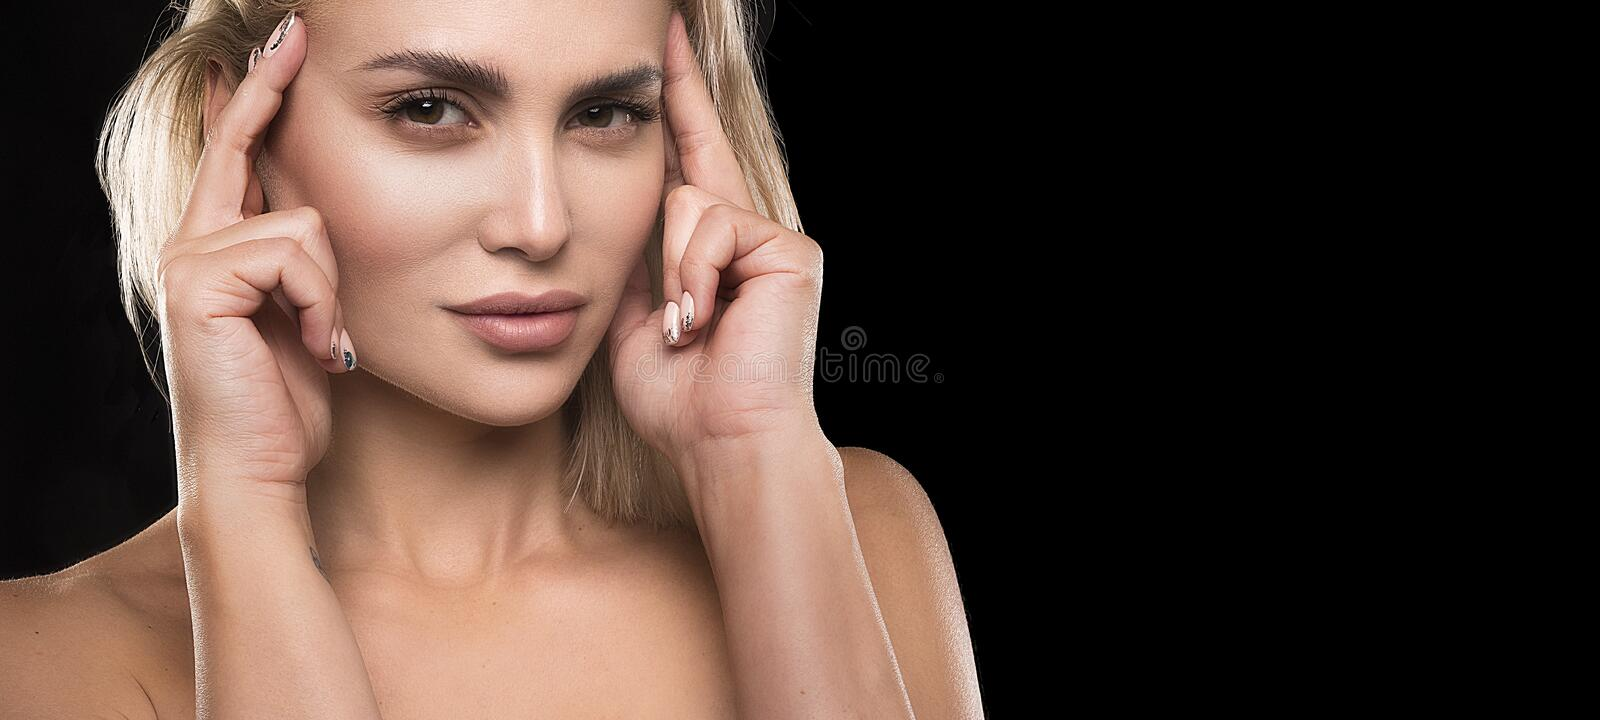 Blonde hair woman with beauty face skin over dark background female portrait.  royalty free stock image